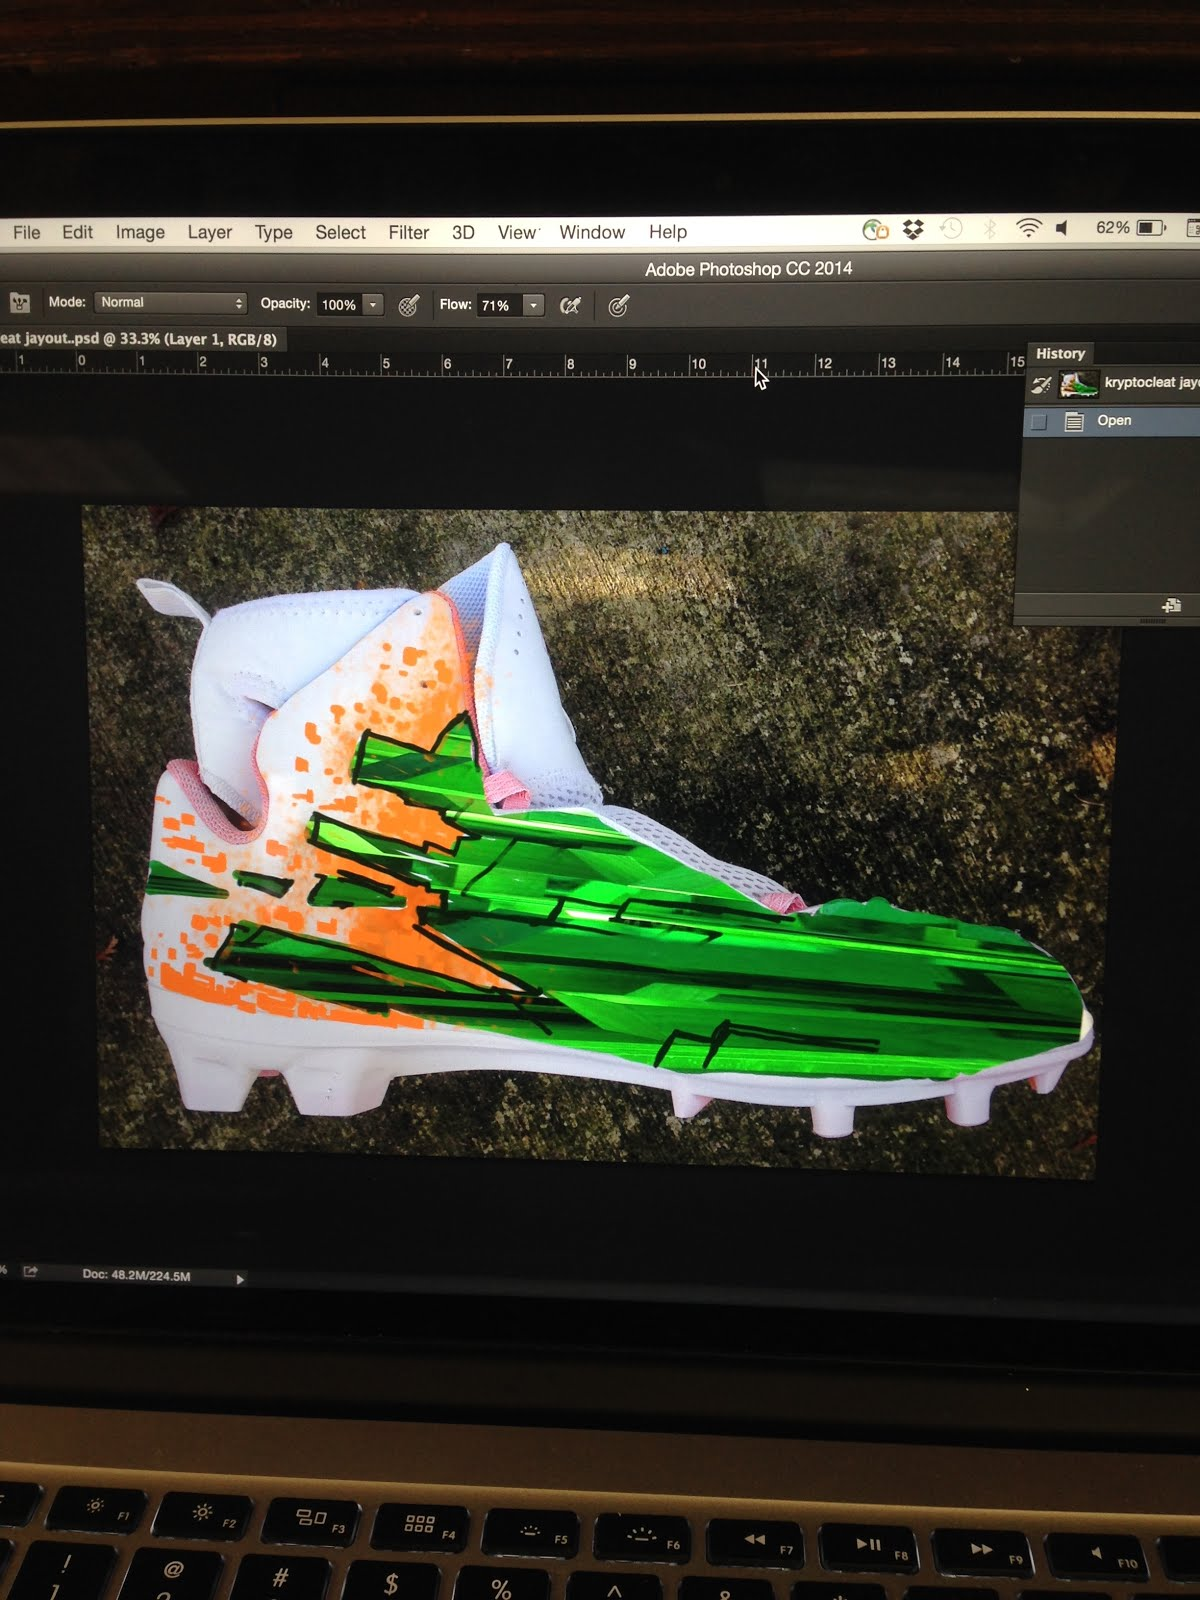 1fca99d16809 Kryptonite cleats for Von Miller and Texas A M. Here are some process shots  of me working on the Von Miller Kryptonite cleats. These were fun to do.